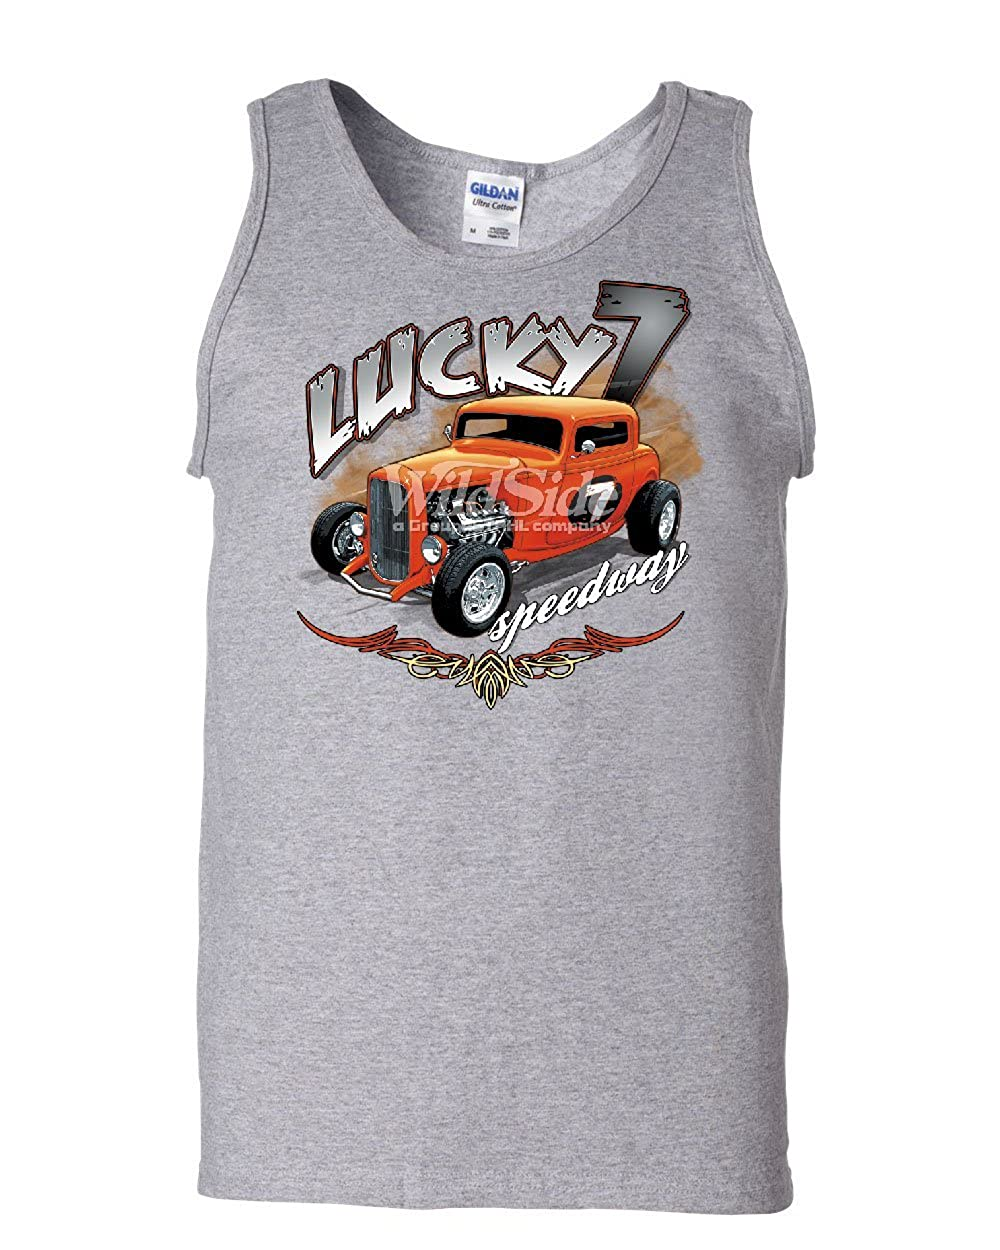 Tee Hunt Lucky 7 Hot Rod Tank Top Speedway American Classic Cars Route 66 Sleeveless